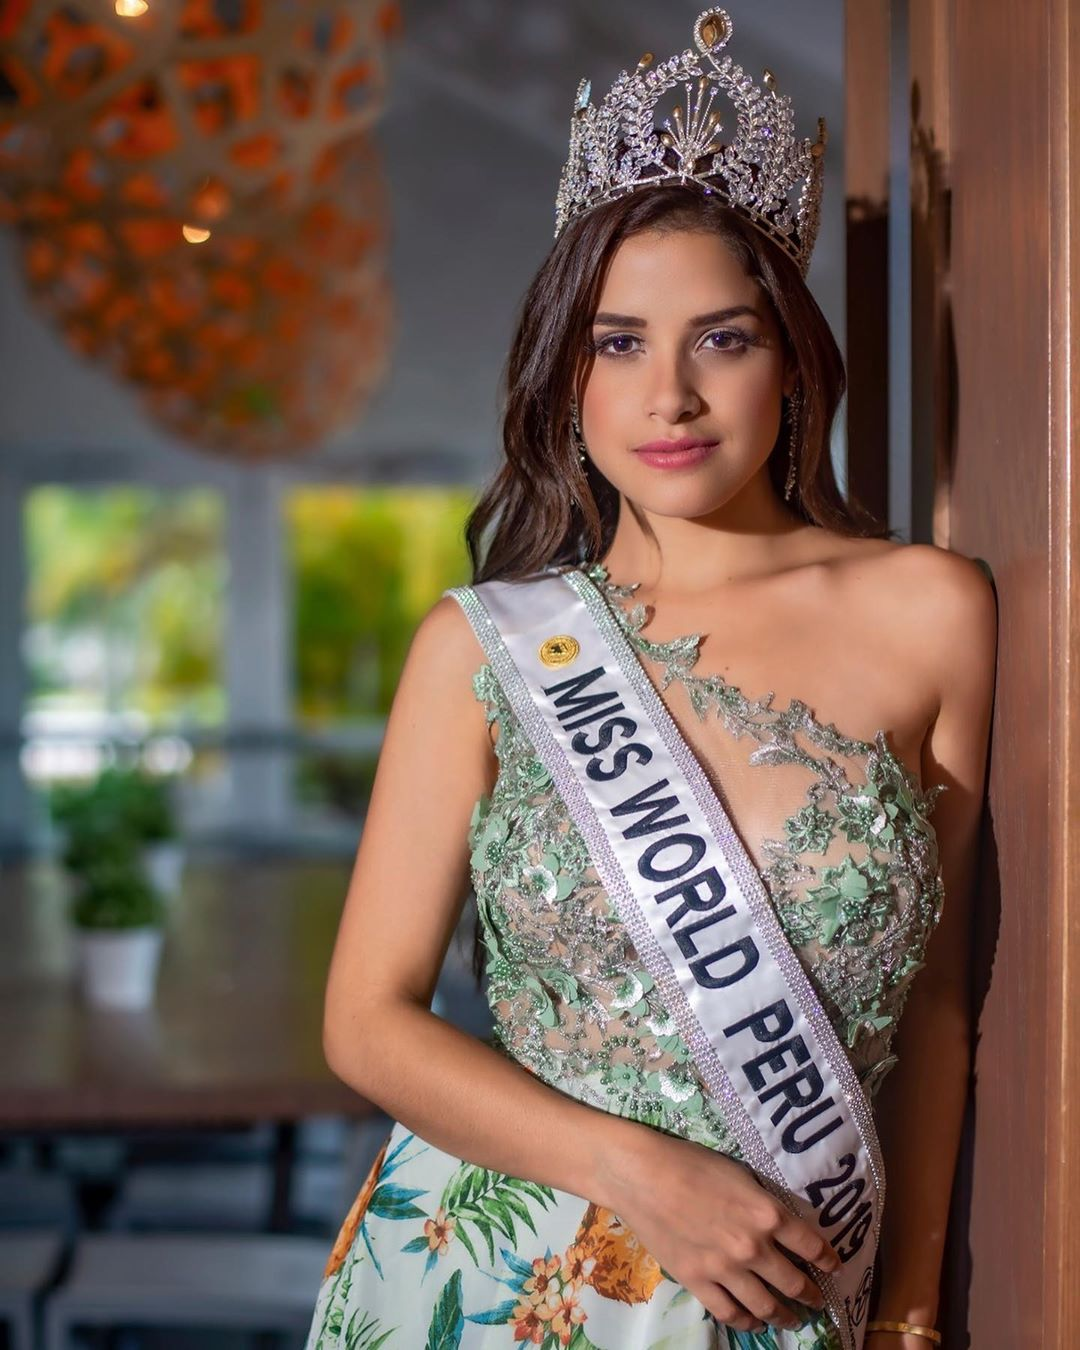 angella escudero, miss world peru 2019. 73512720